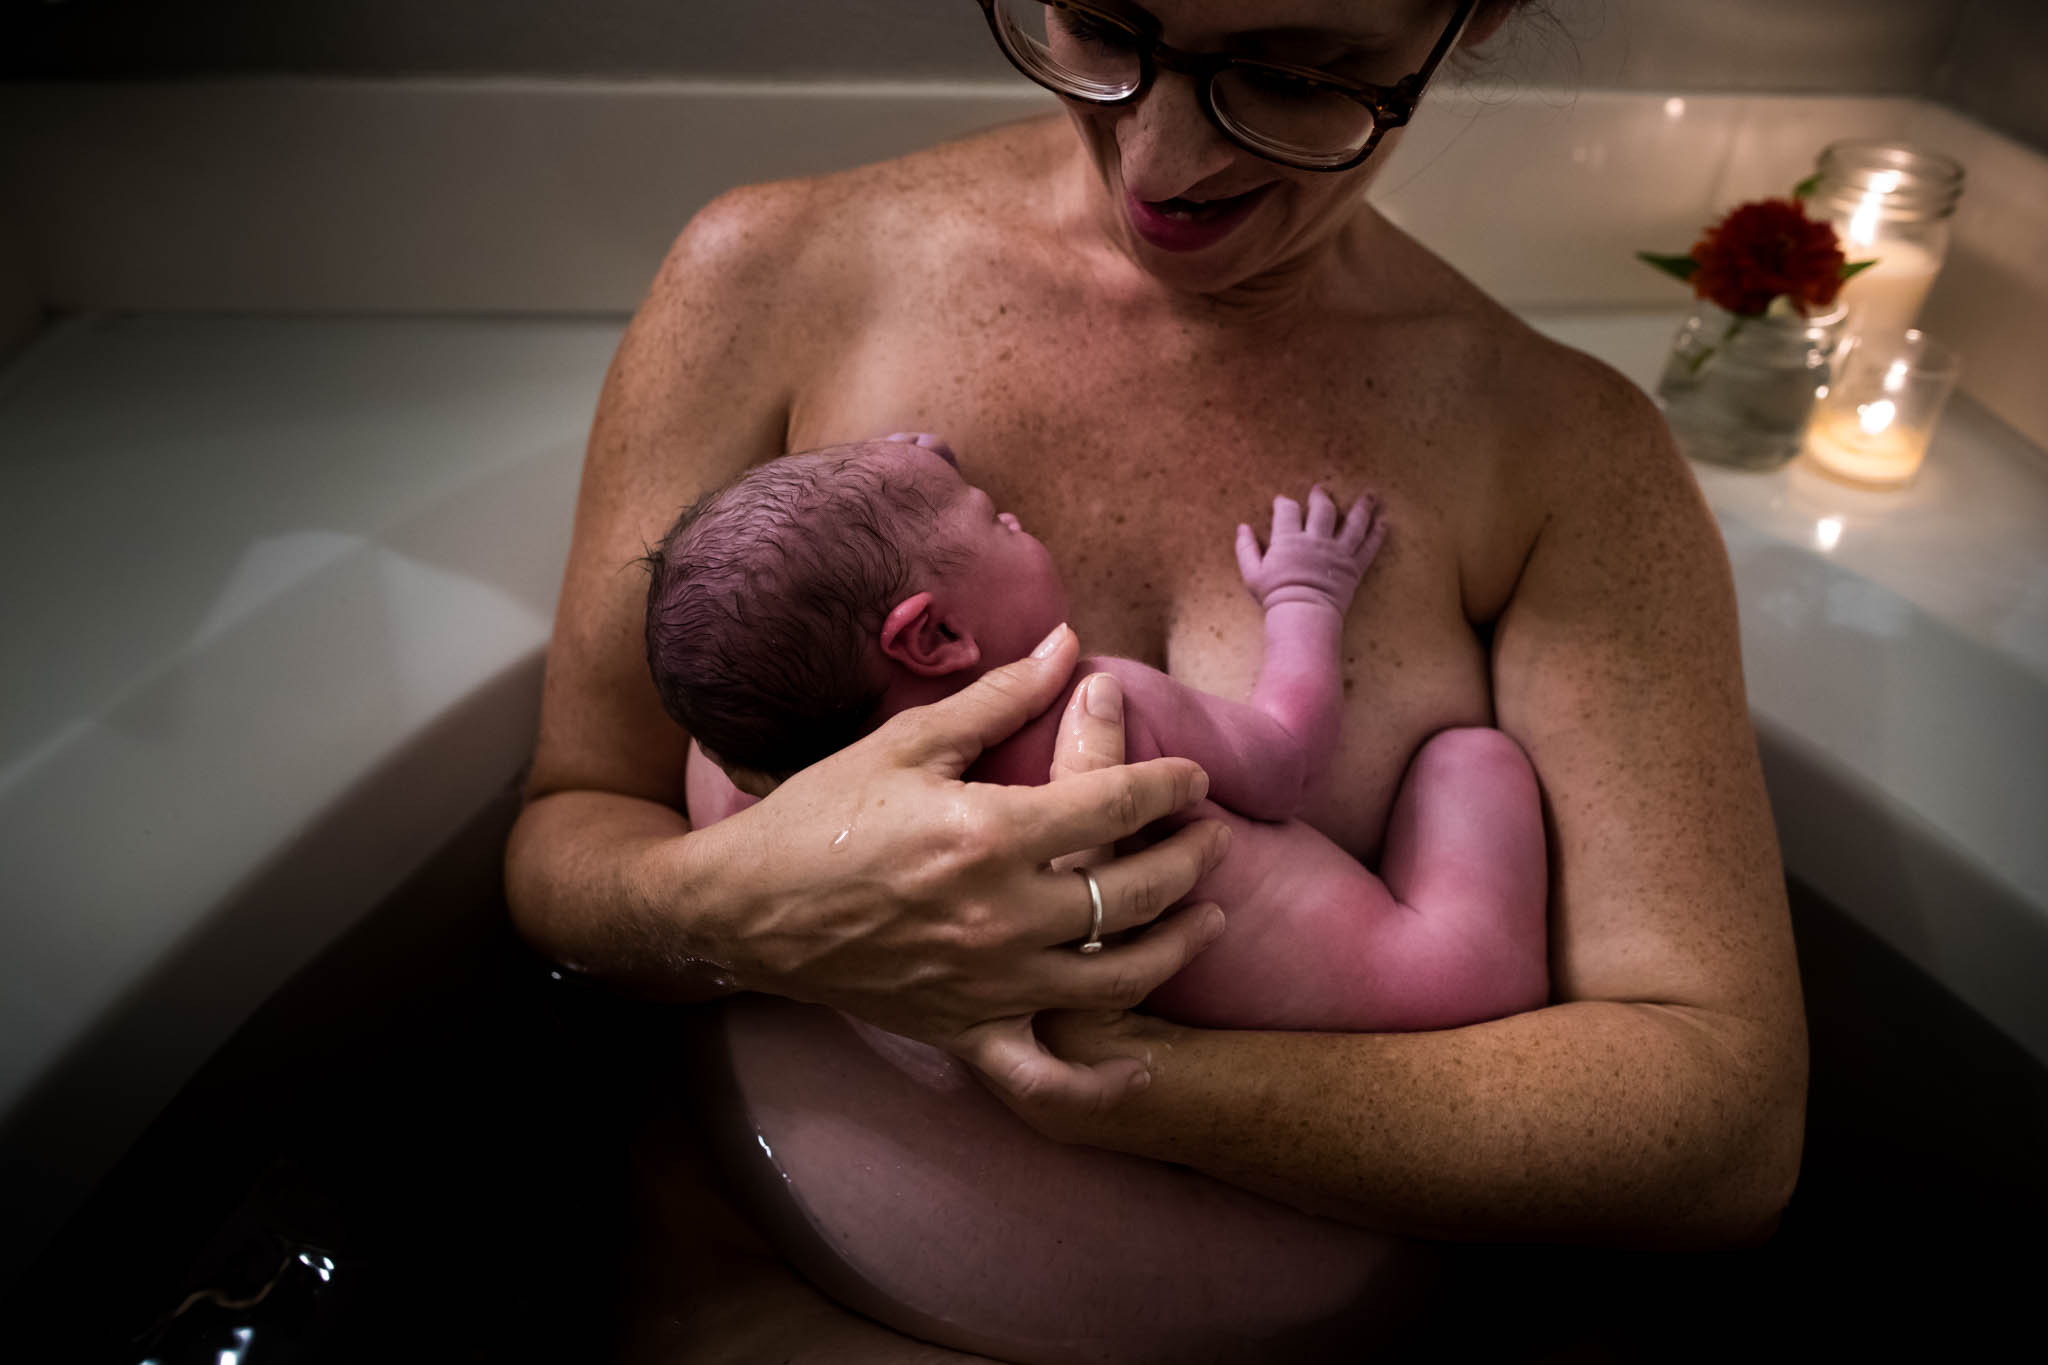 A dallas birth photographer Lawren Rose Photography takes an image after a Denton texas home birth as Mom got into an herbal bath with her newest son